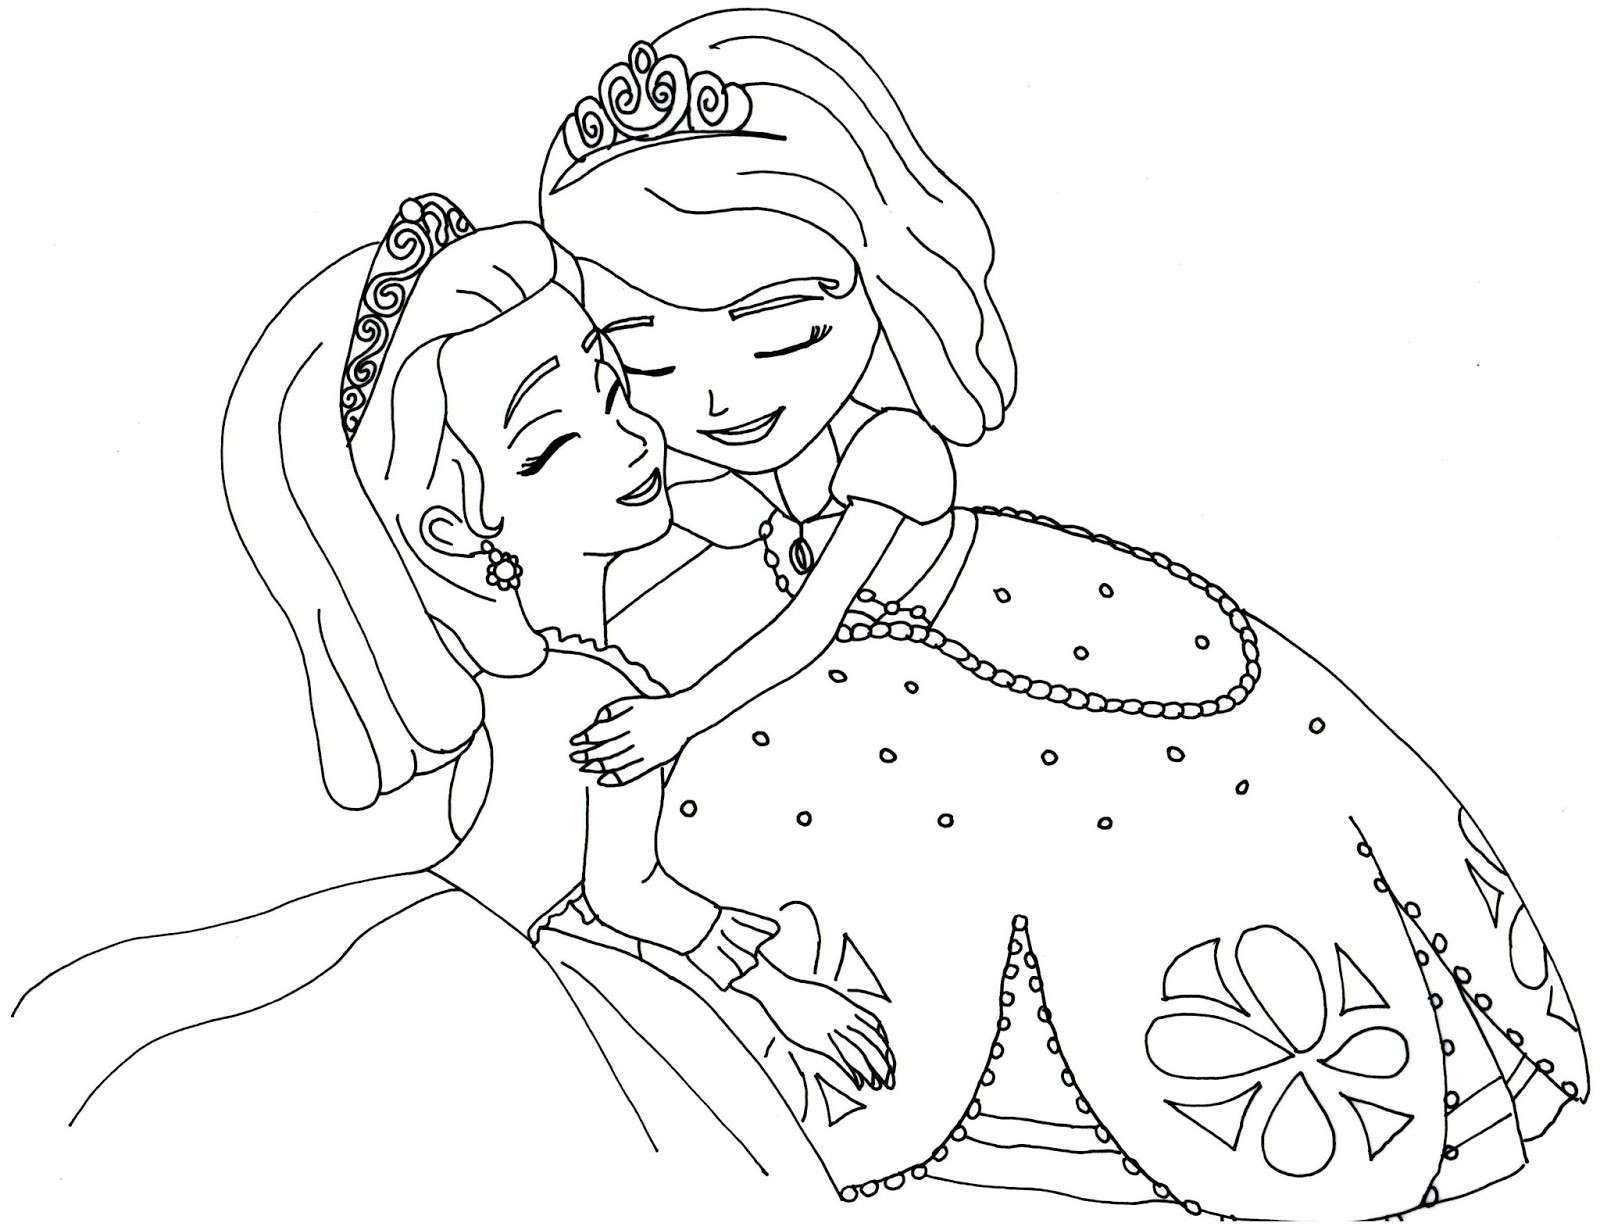 sophia the first coloring pages sofia and clover coloring page free printable coloring pages pages sophia coloring first the